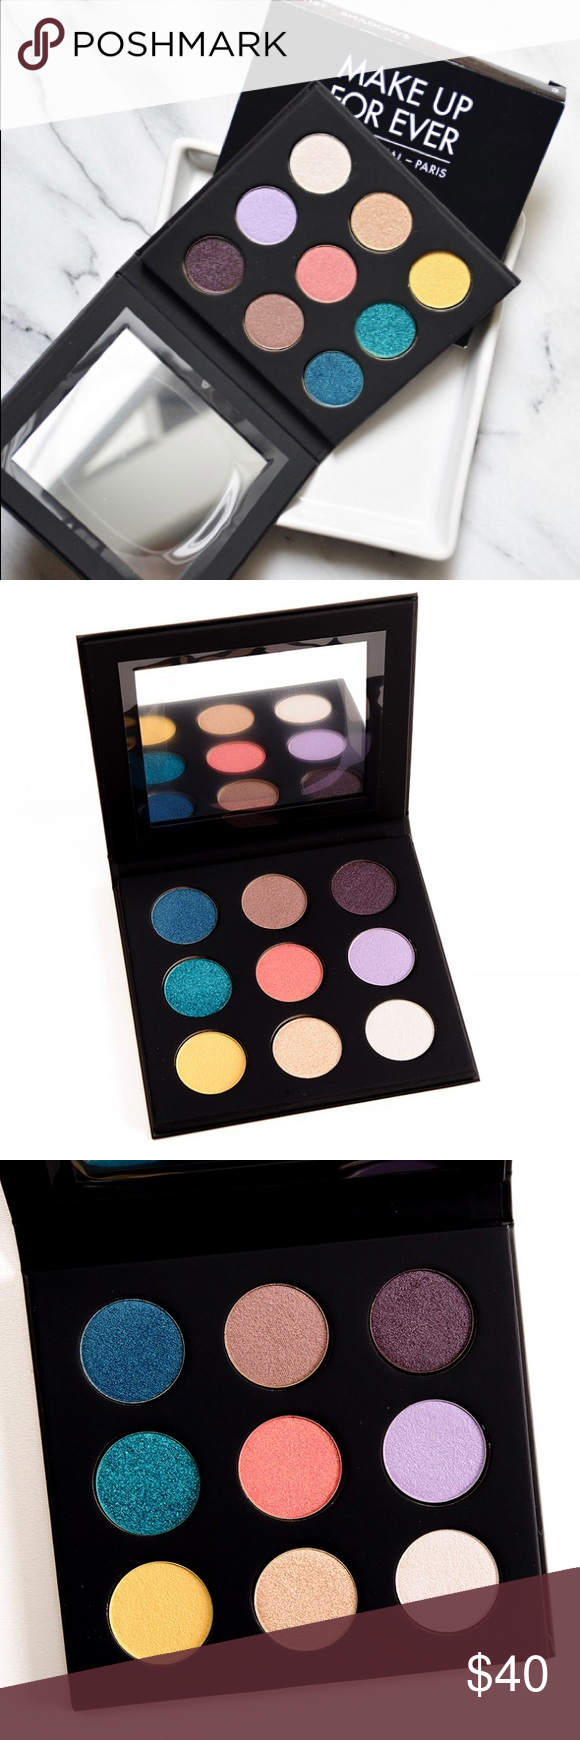 Limited edition Makeup Forever Artist palette 3